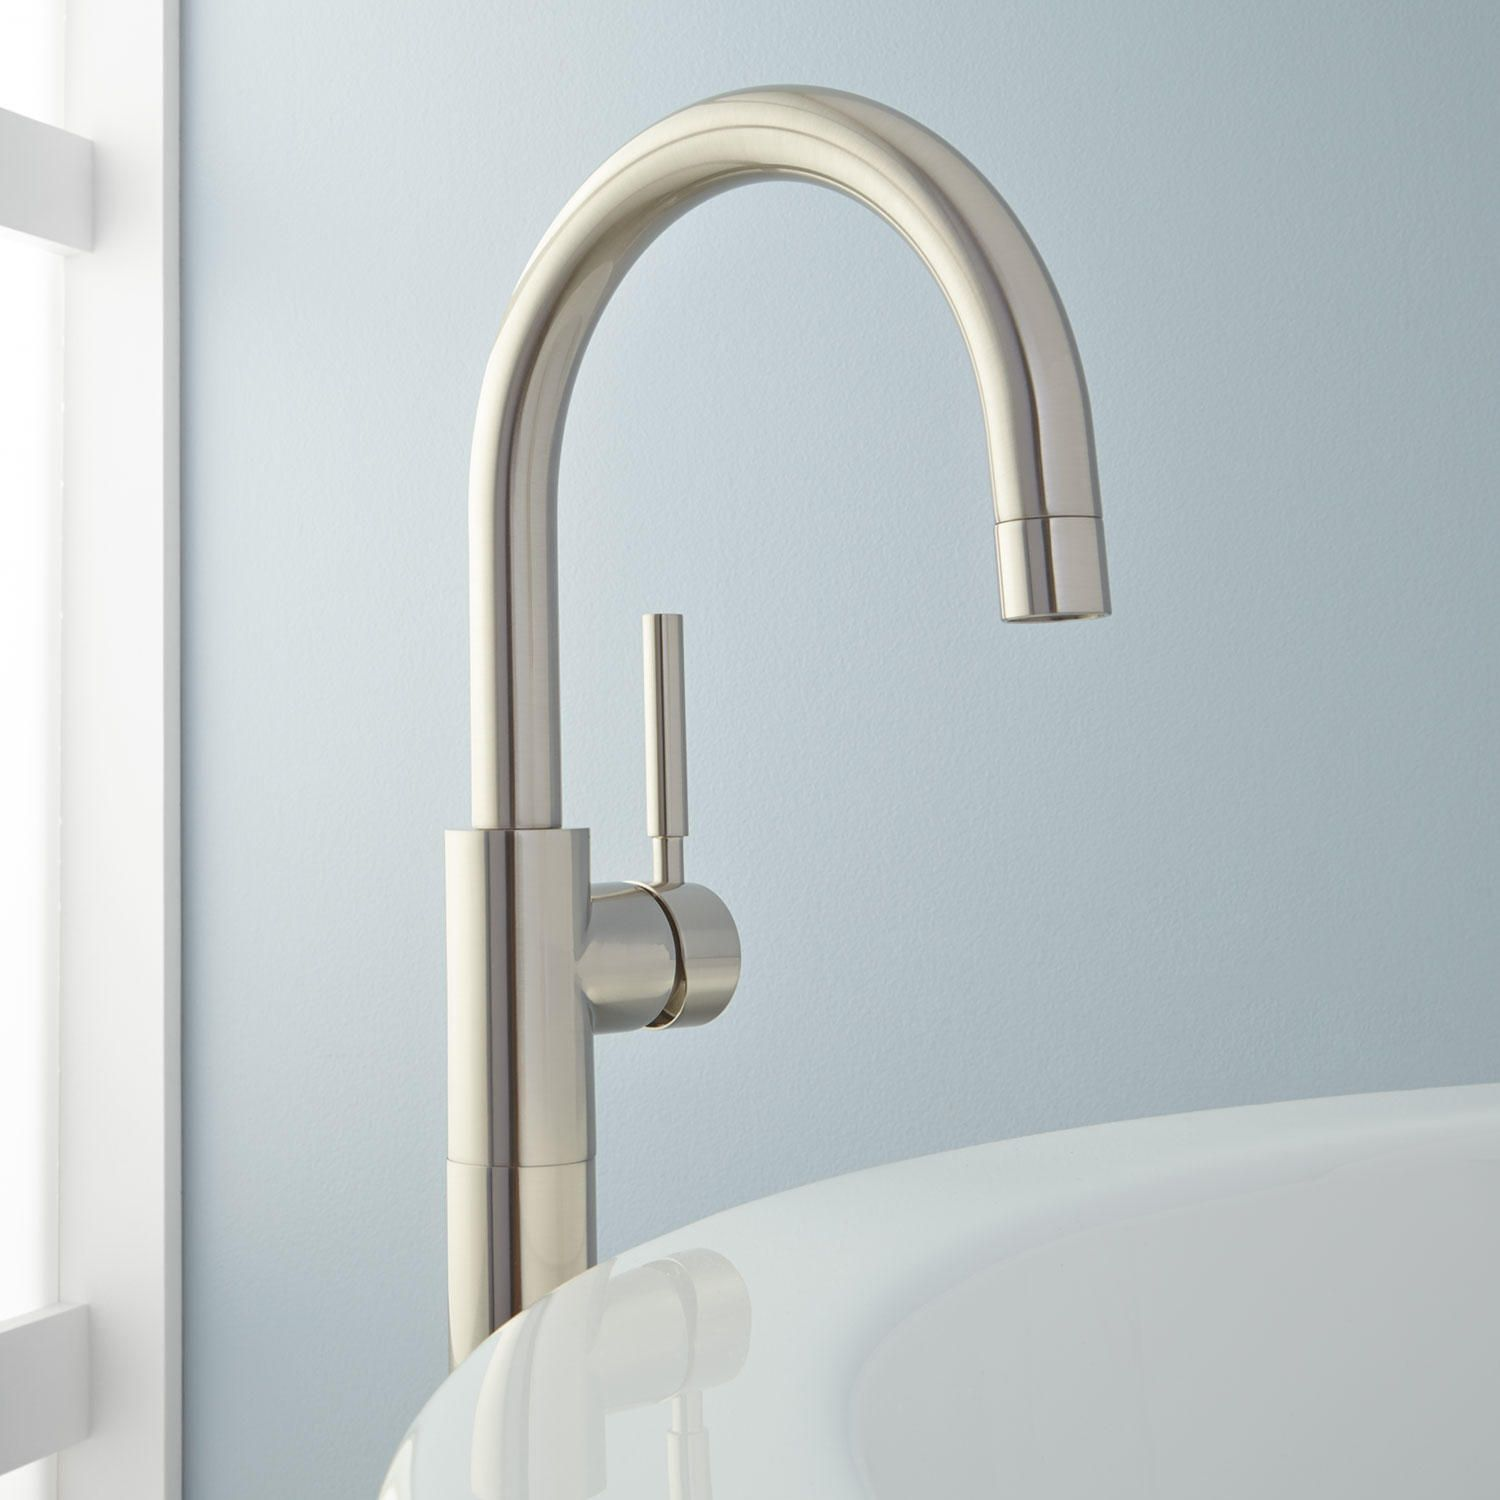 Simoni Gooseneck Freestanding Tub Faucet Brushed Nickel